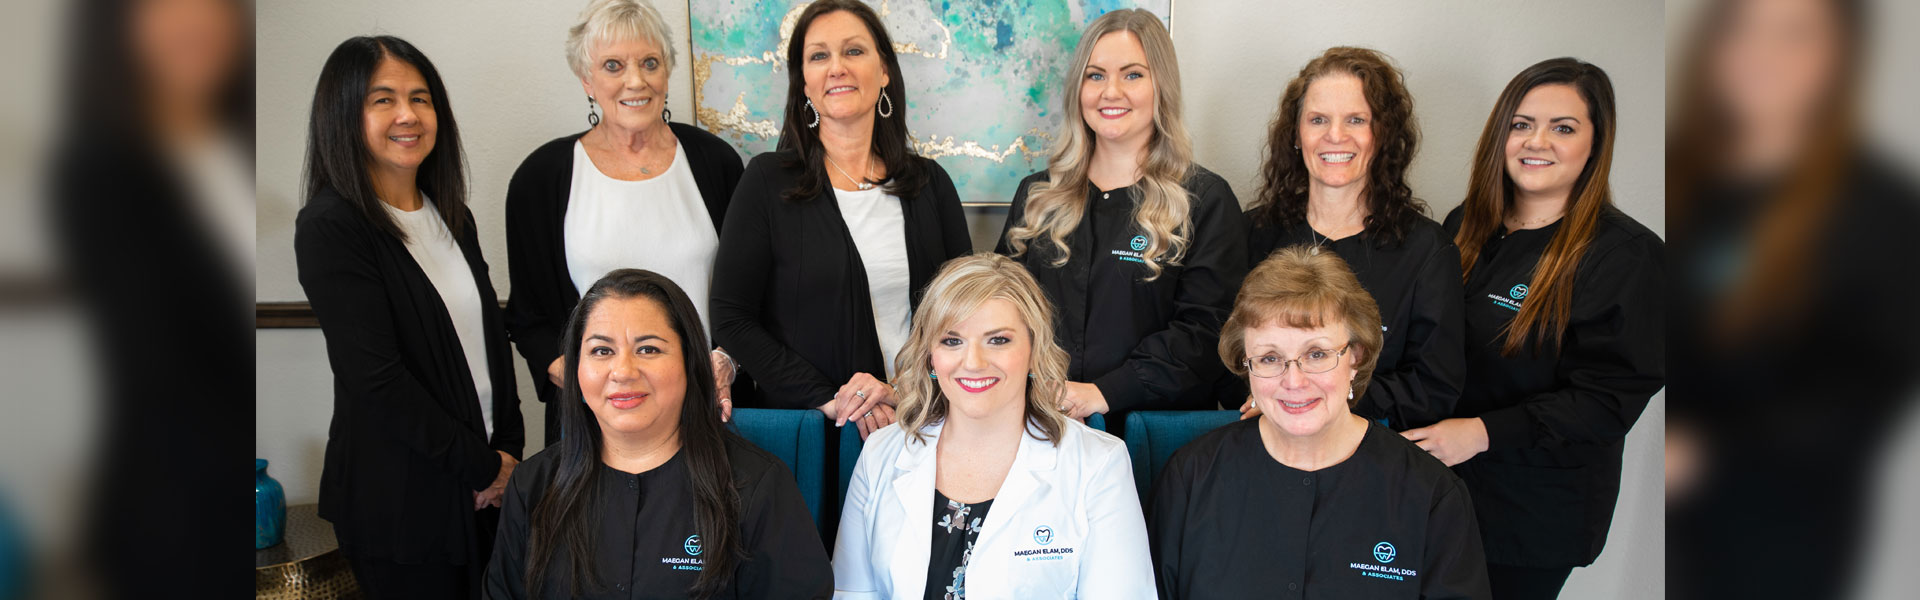 Team at Maegan Elam, DDS & Associates